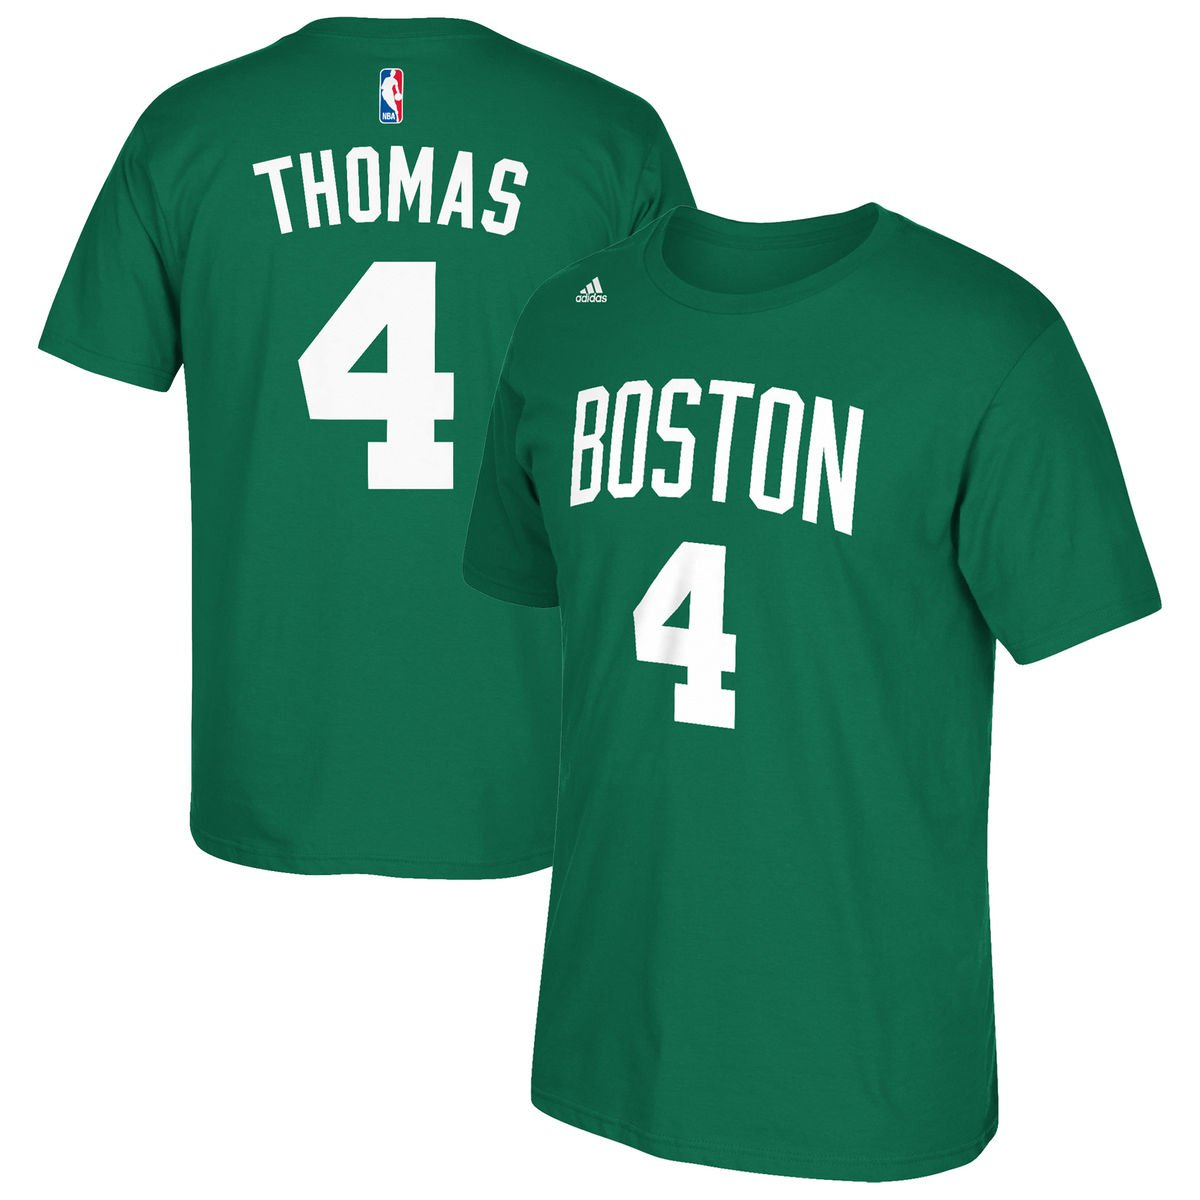 c5cf6e8c5a6 Made by Adidas for Fans of the Celtics Made from 100% Cotton, Athletic Fit  Body Features HD Screening on Both The Front & Back